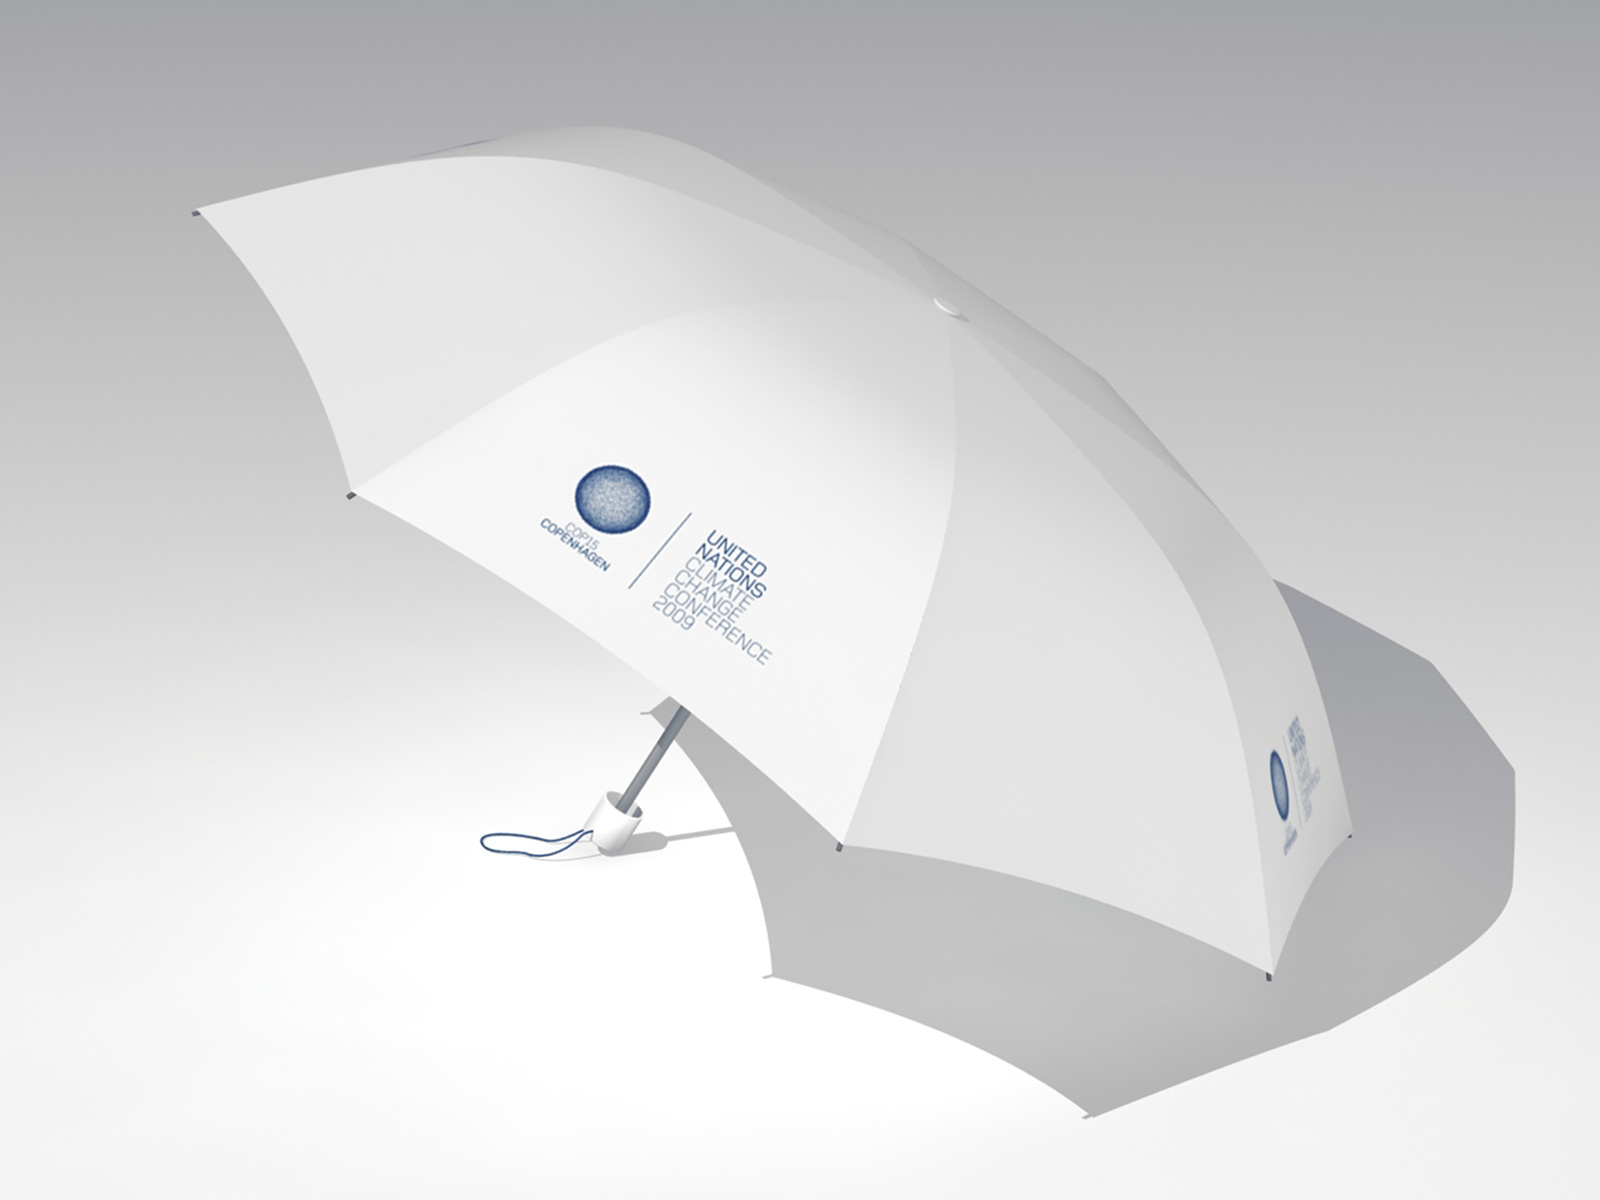 cop15_umbrella_std